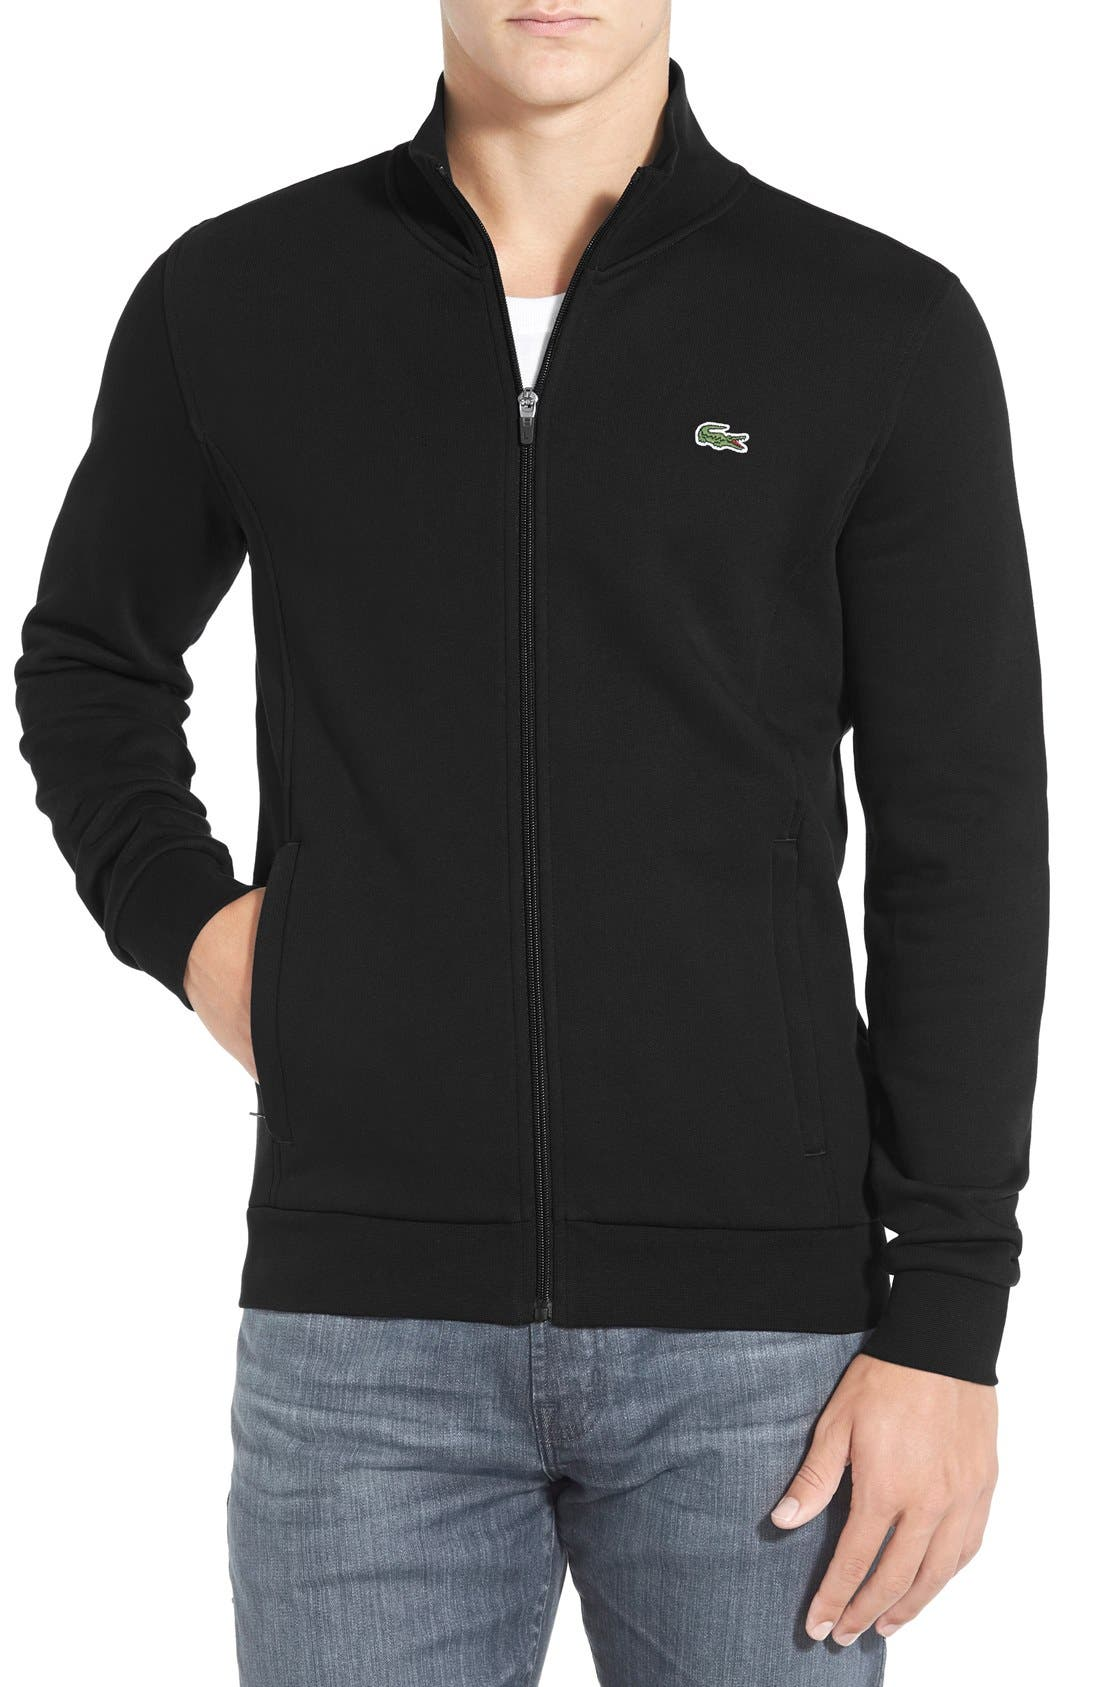 Main Image - Lacoste 'Sport' Mock Neck Zip Sweatshirt